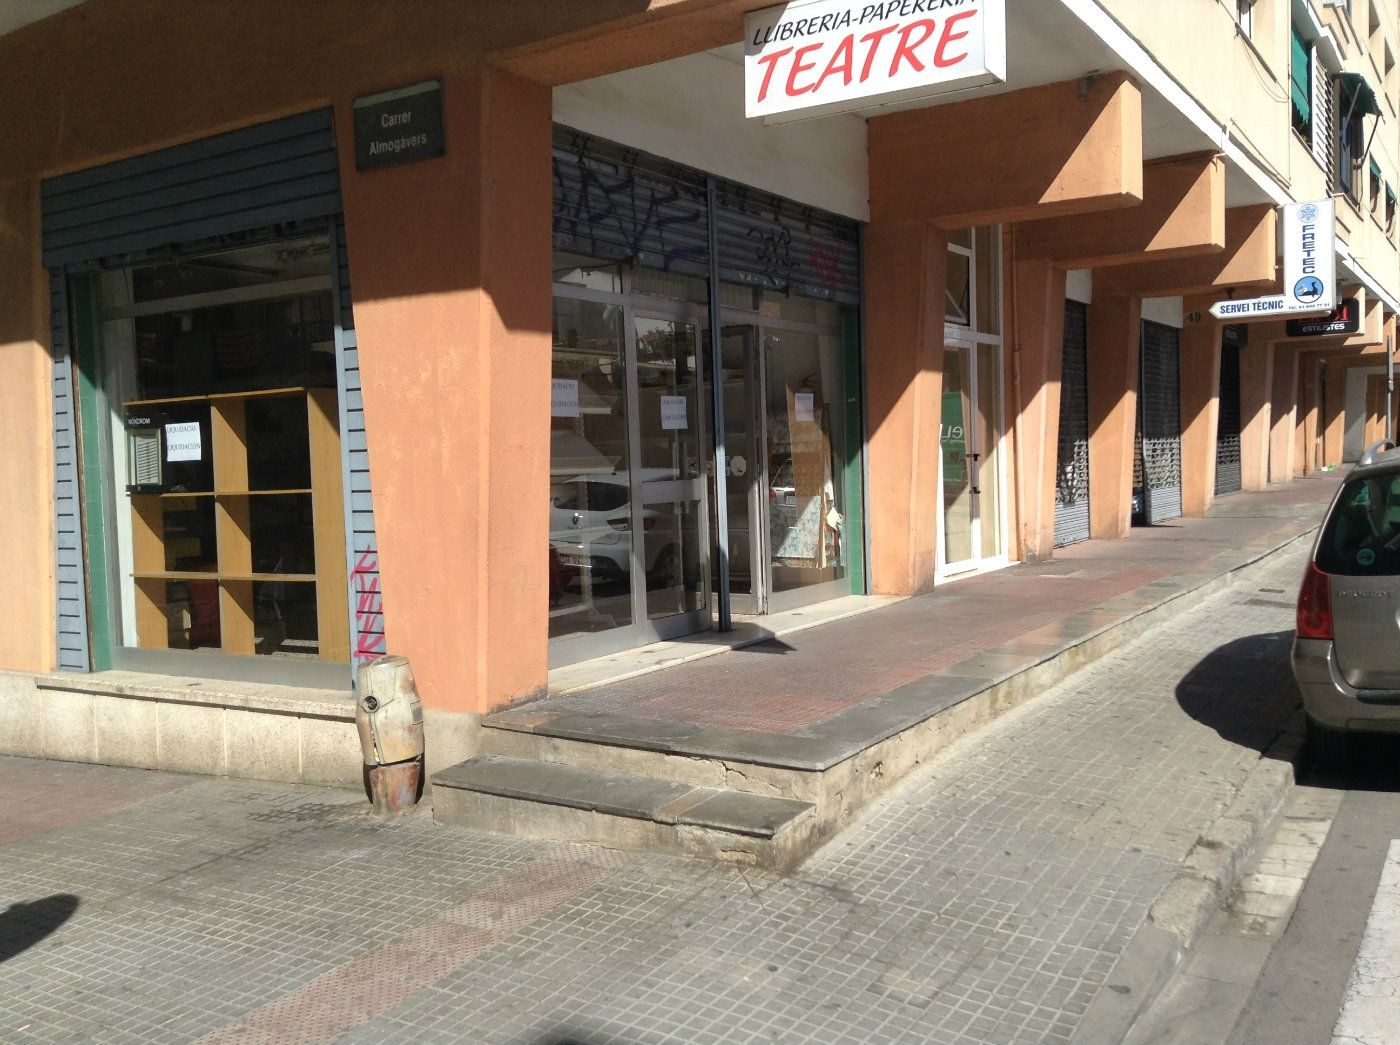 Local Comercial en Carrer ponent, 49. Local esquinero  12 m. fachada